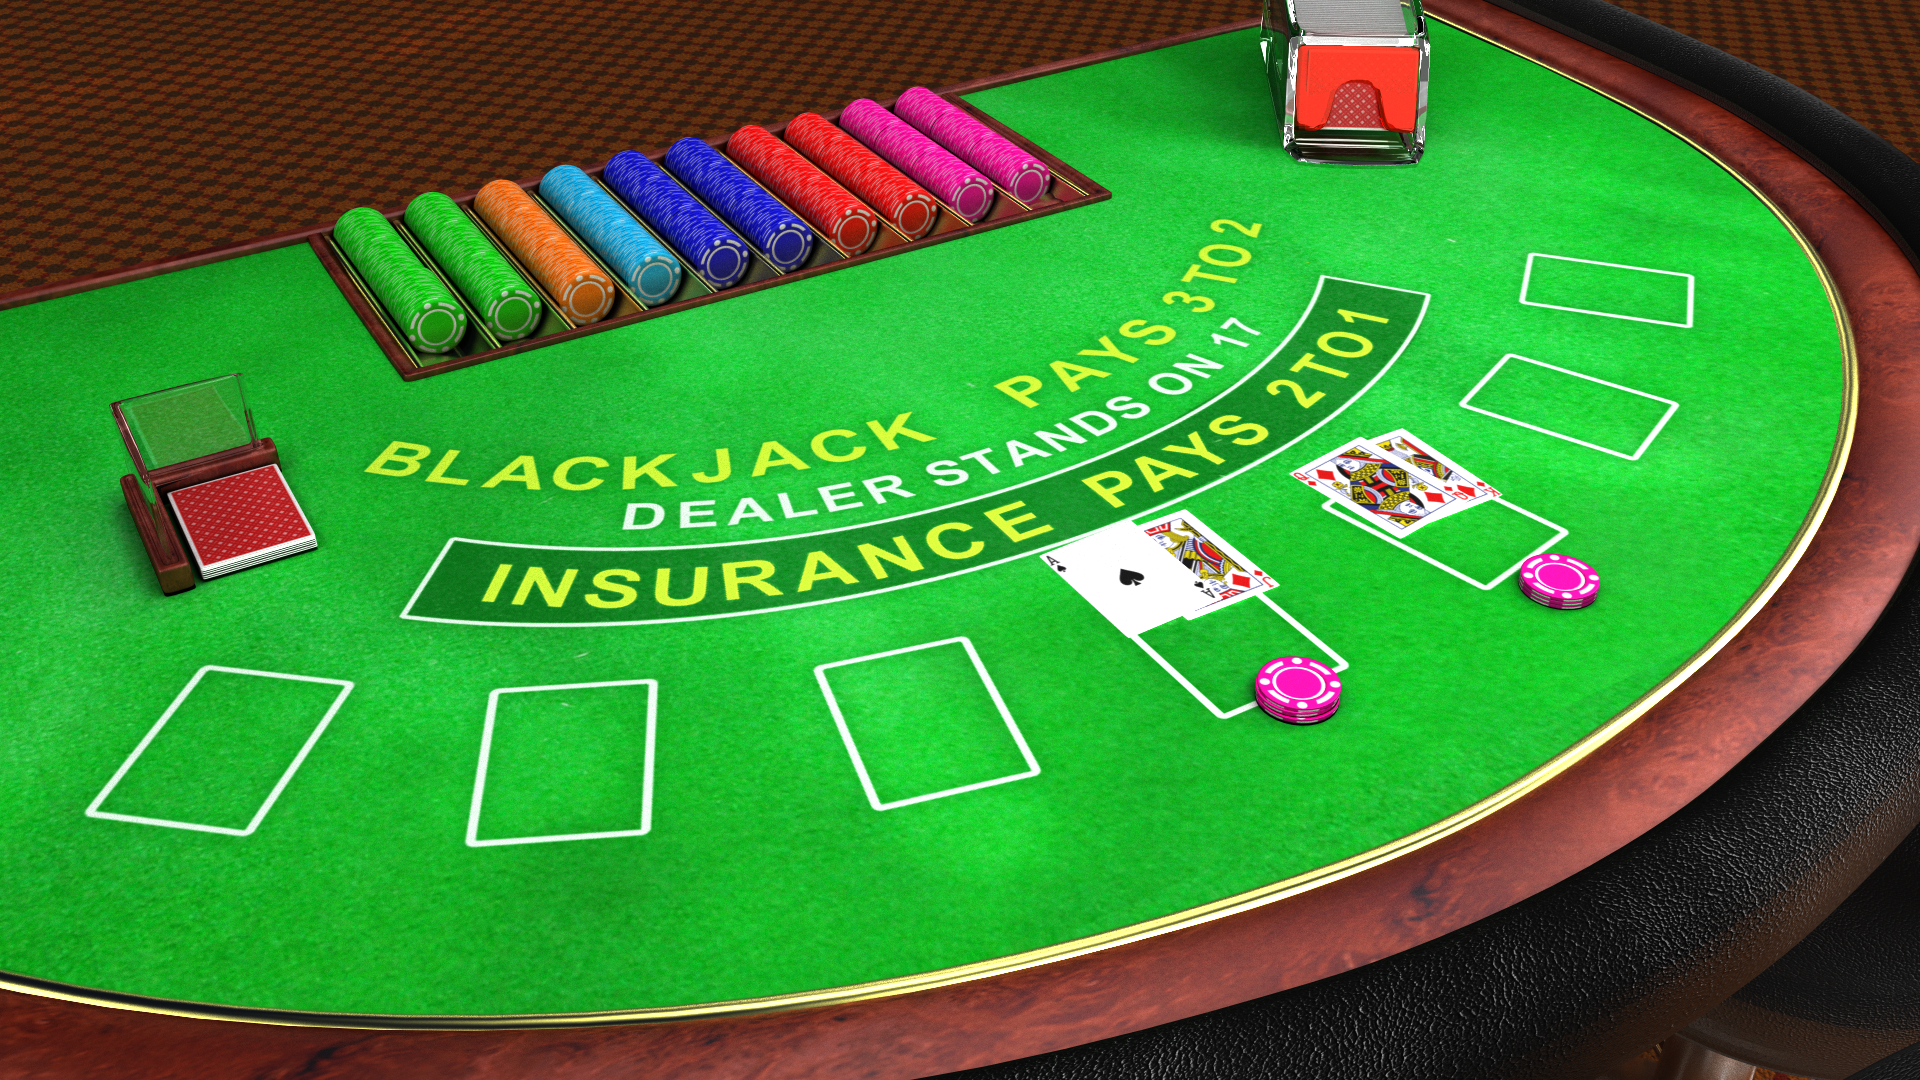 Blackjack collections